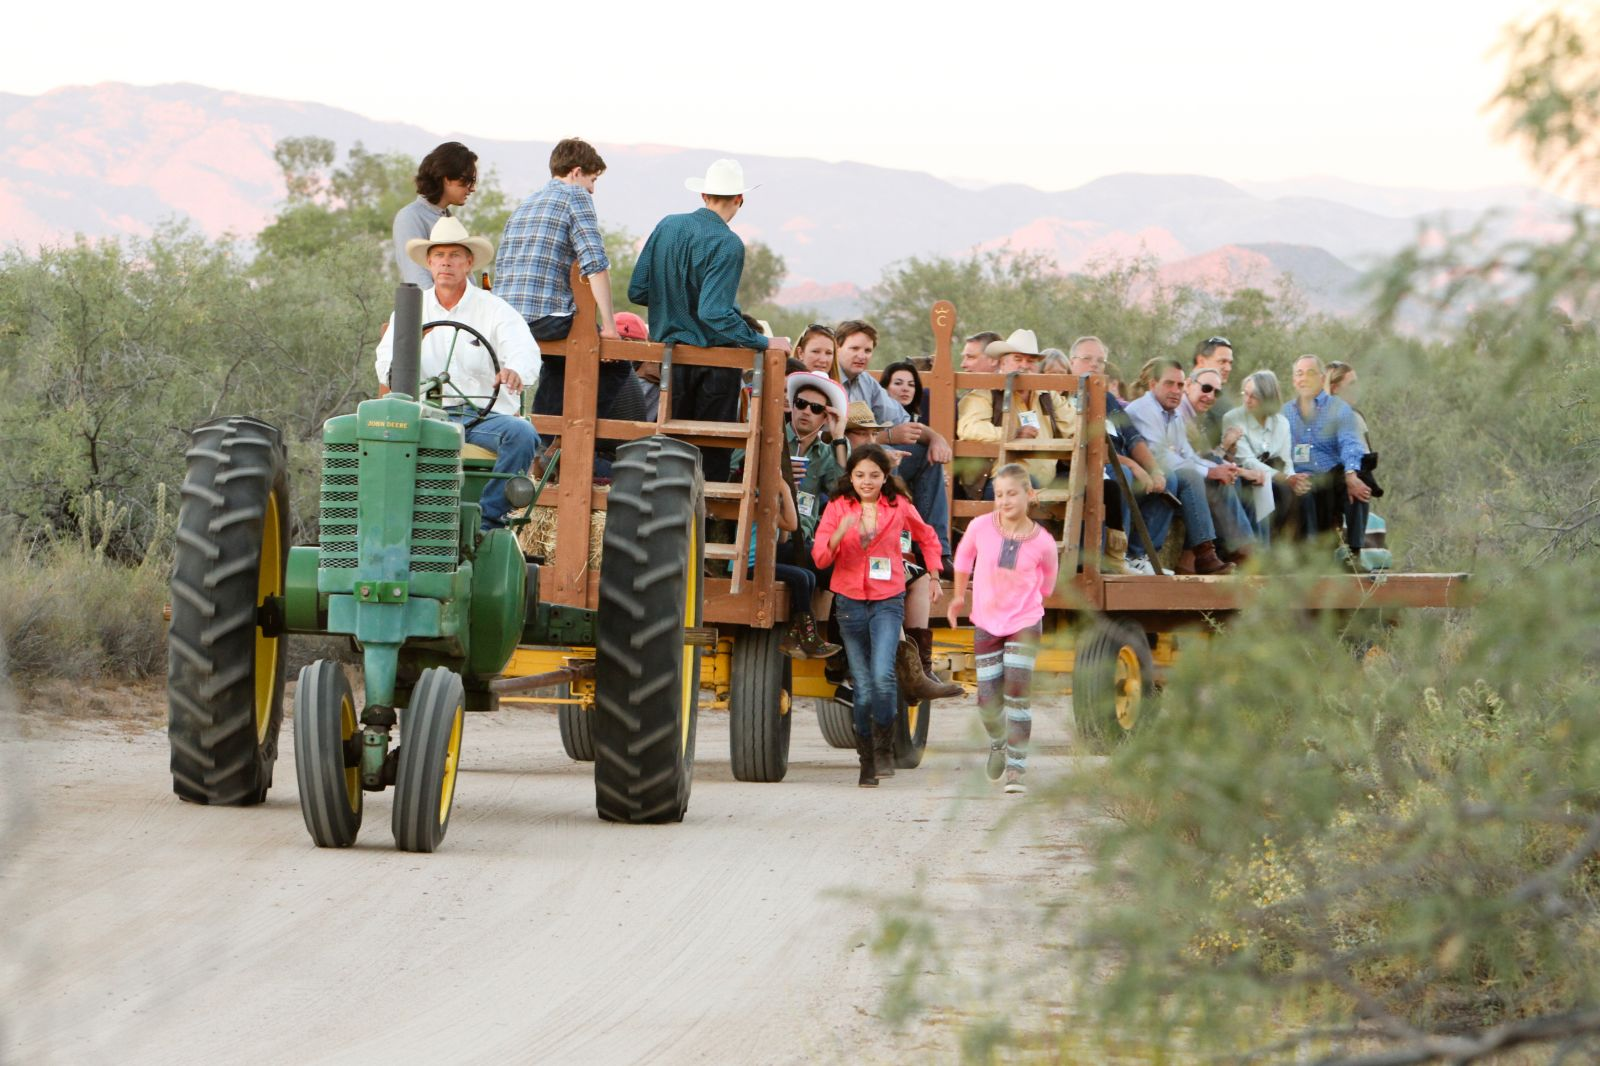 Tractor pulling group of resort guests to our cookout venue at Rancho de los Caballeros